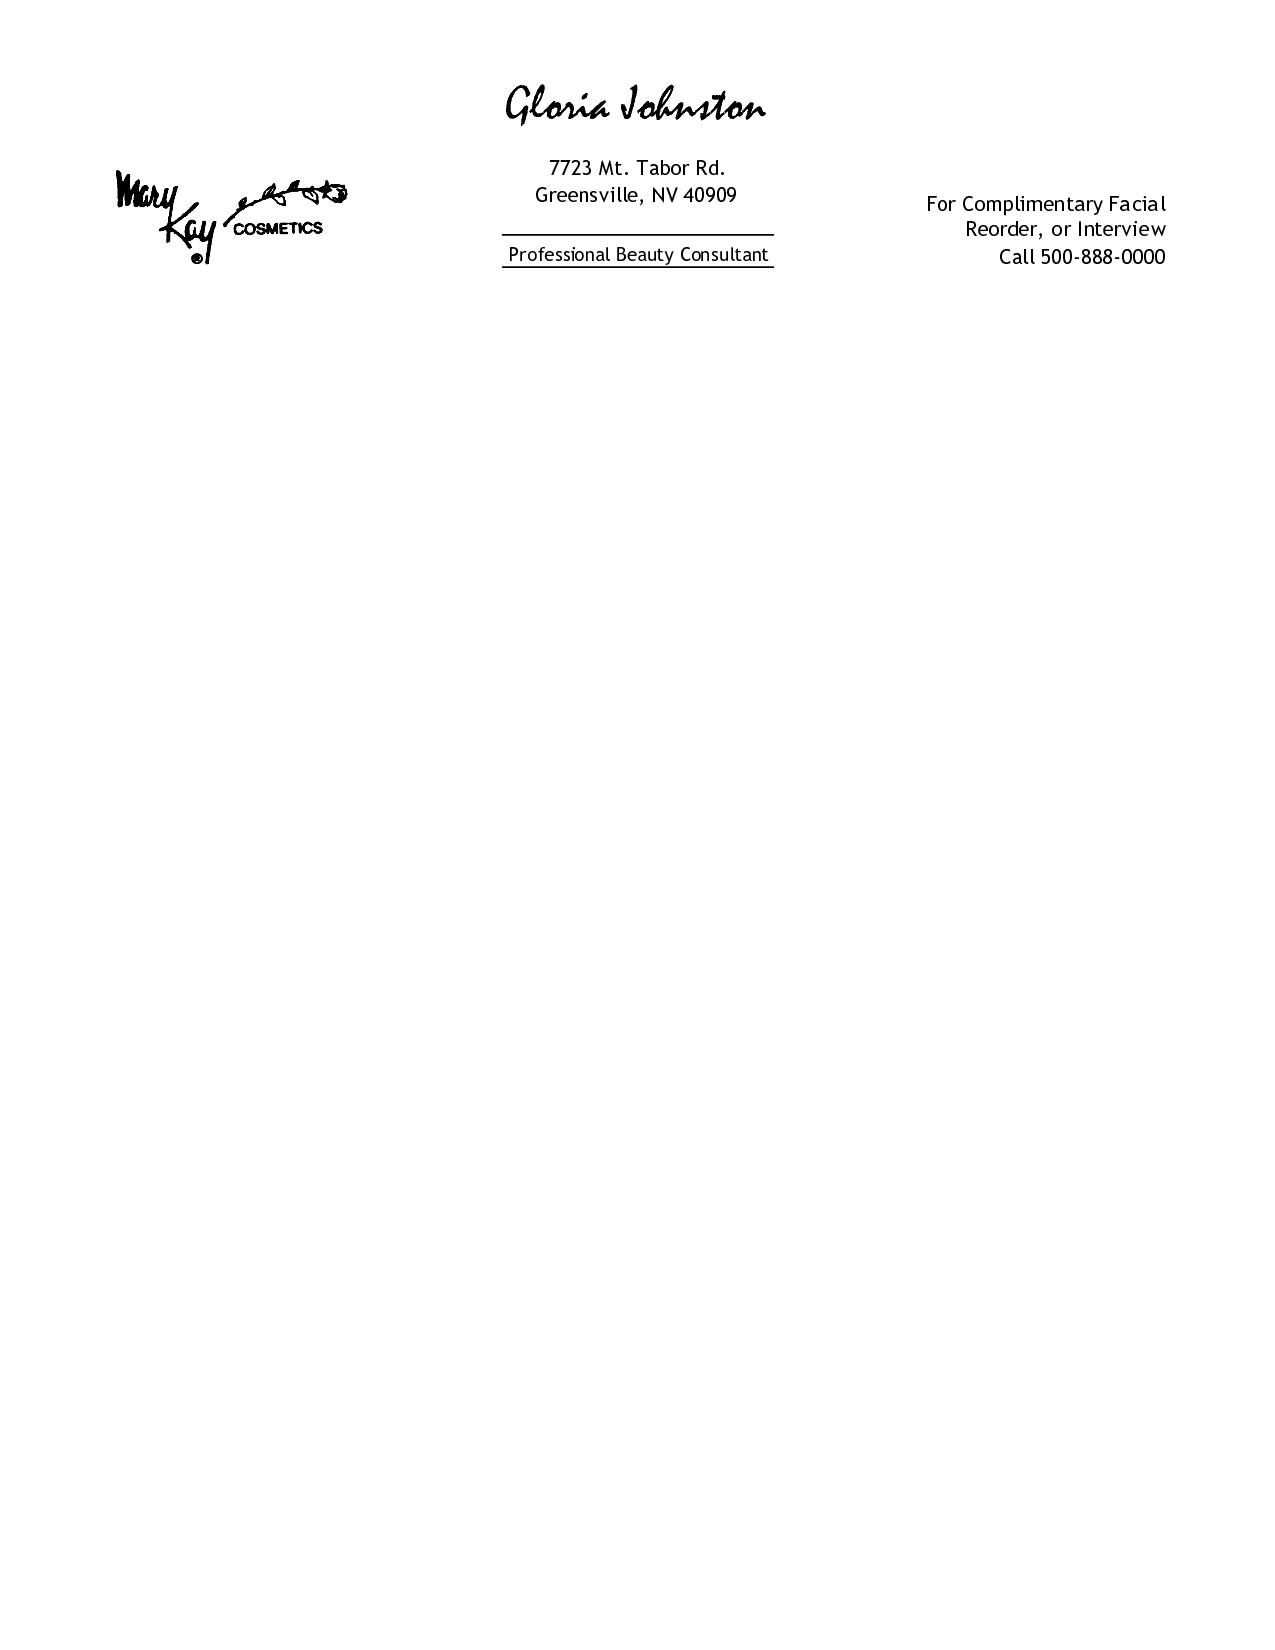 Free Printable Personal Letterhead Templates | Free Professional - Free Printable Letterhead Templates